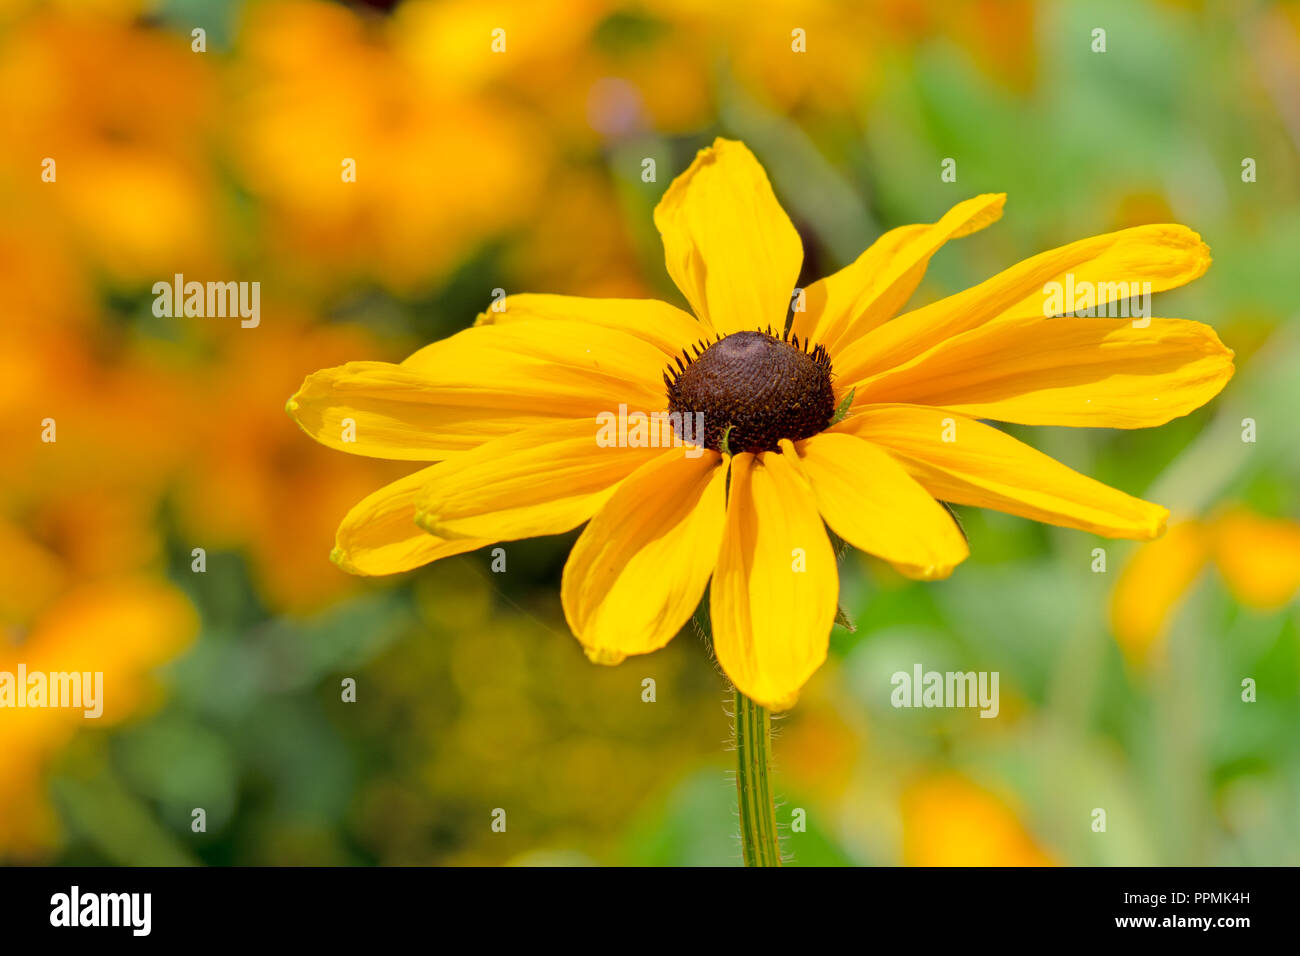 Flowerbed with yellow echinacea flowers - selective focus - Stock Image